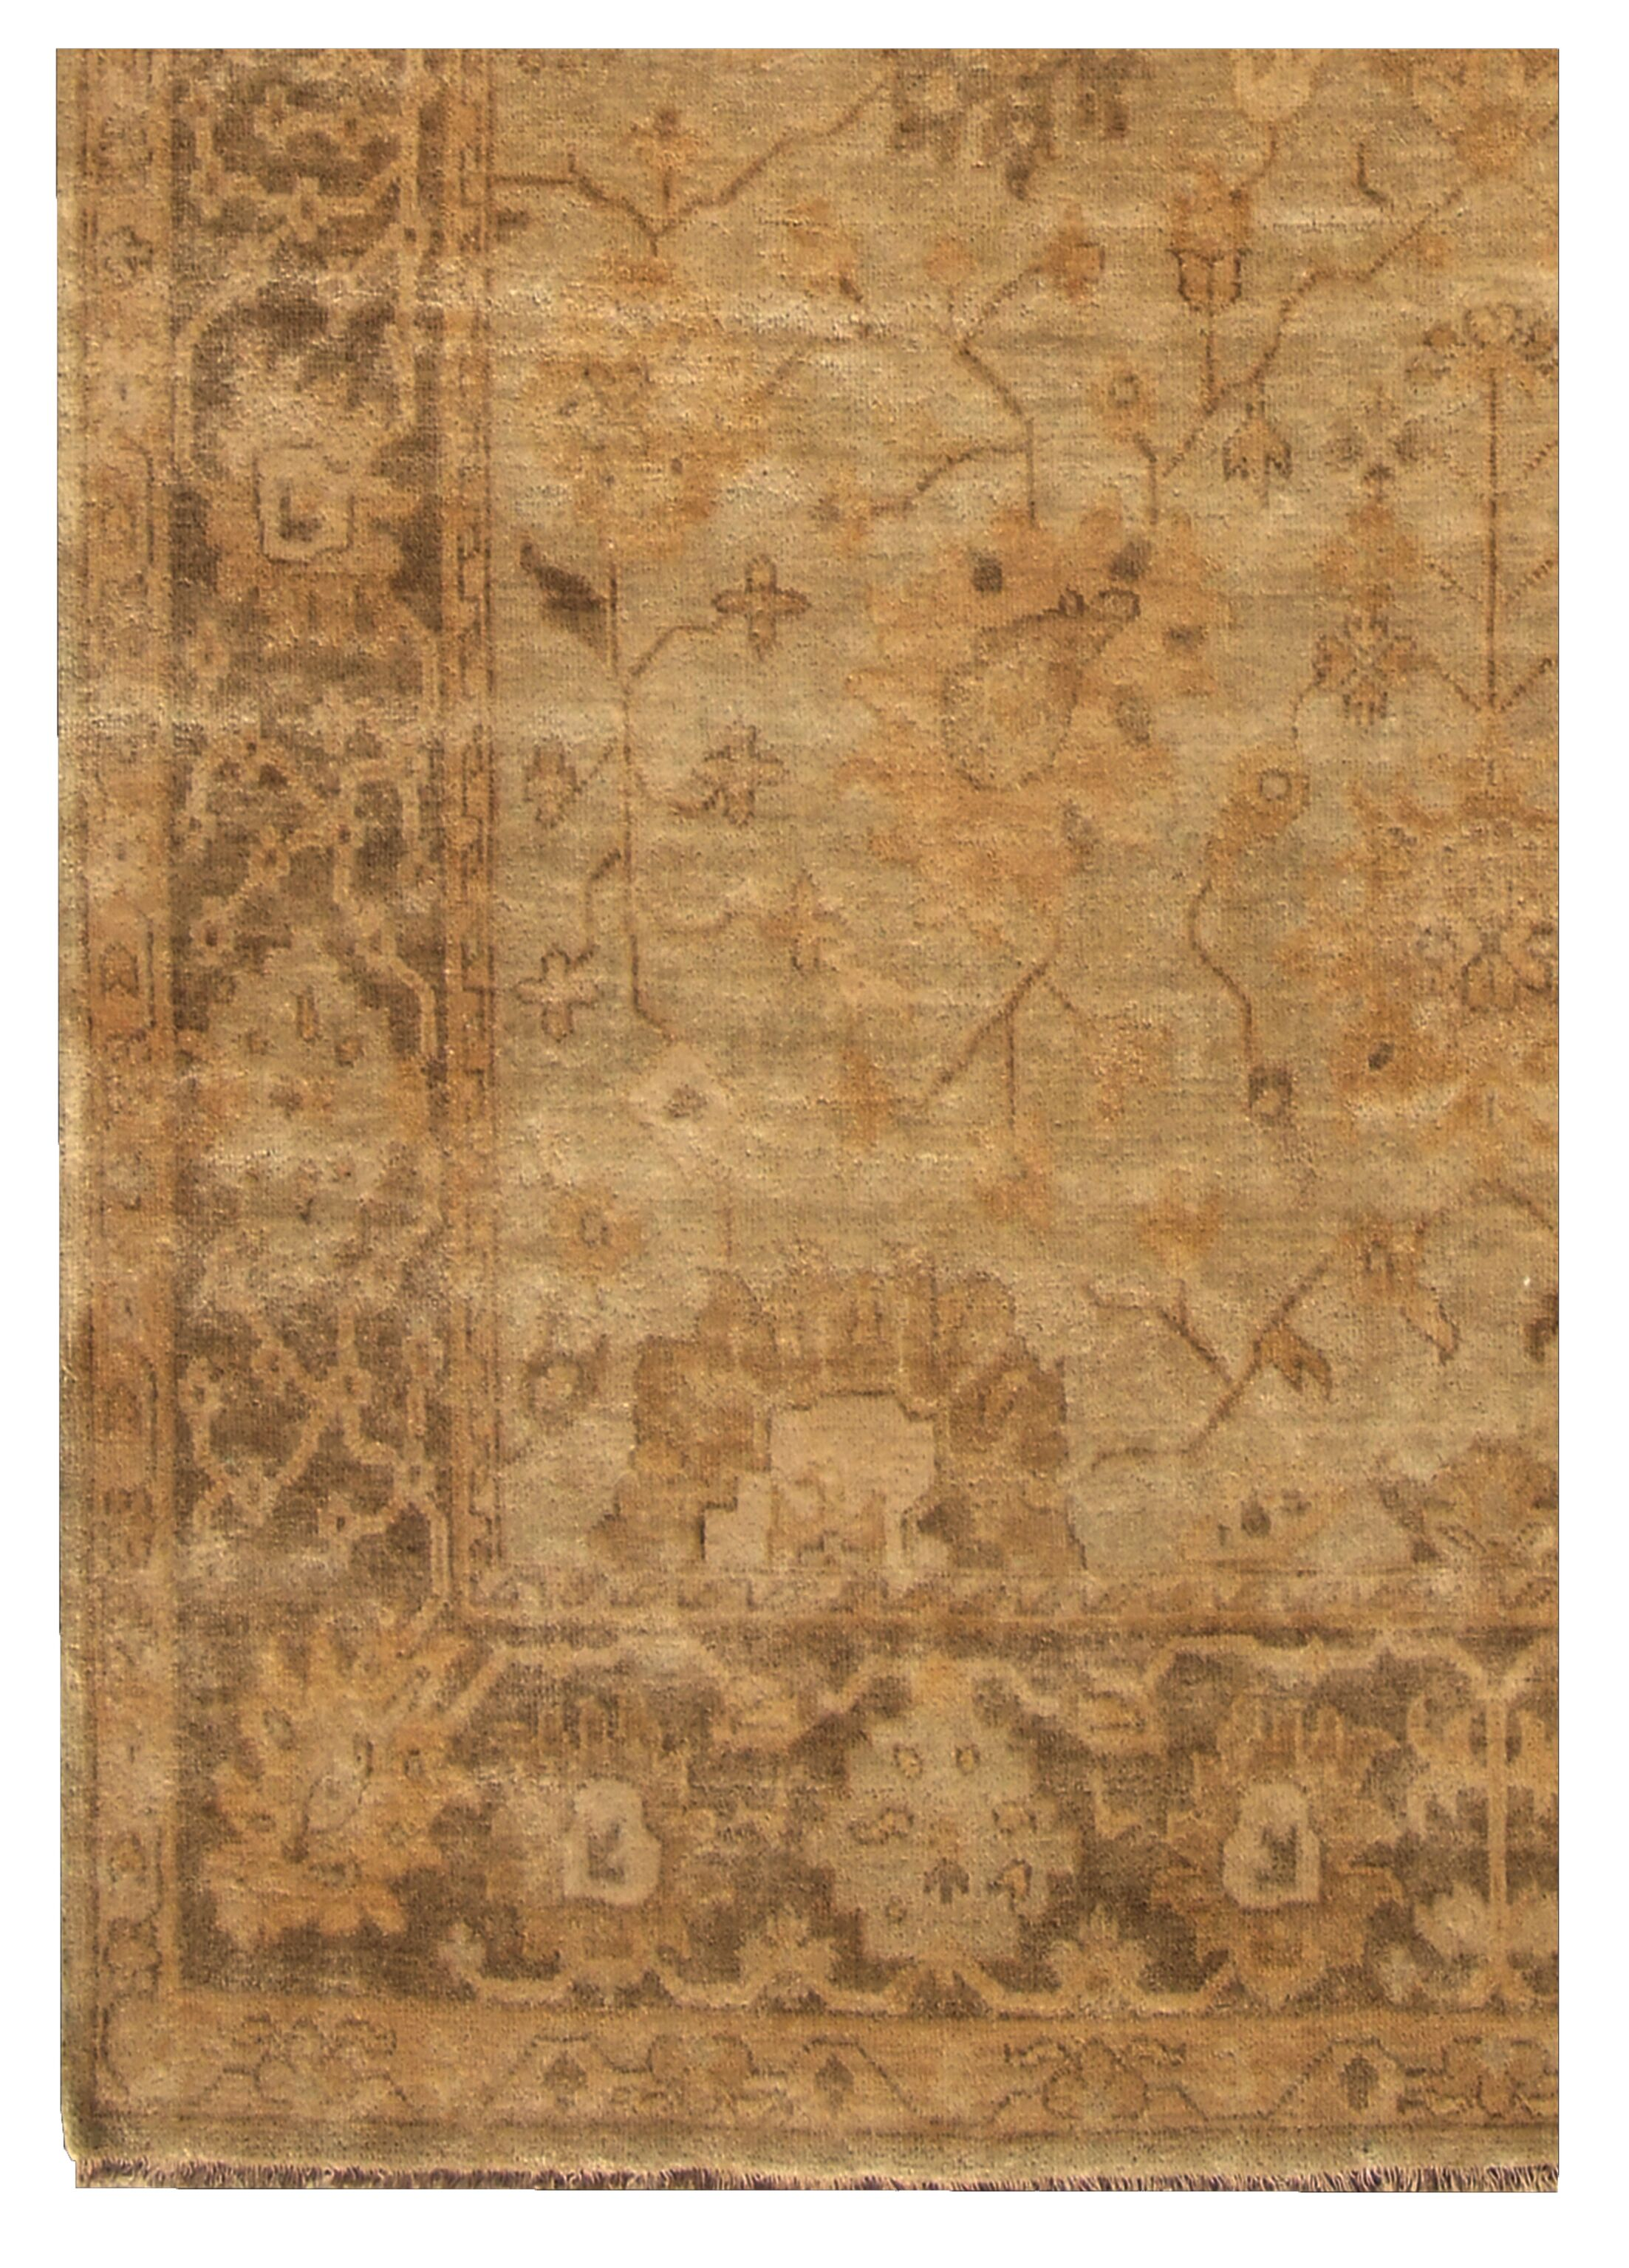 Oushak Hand-Knotted Wool Brown/Gray Area Rug Rug Size: Rectangle 9' x 12'